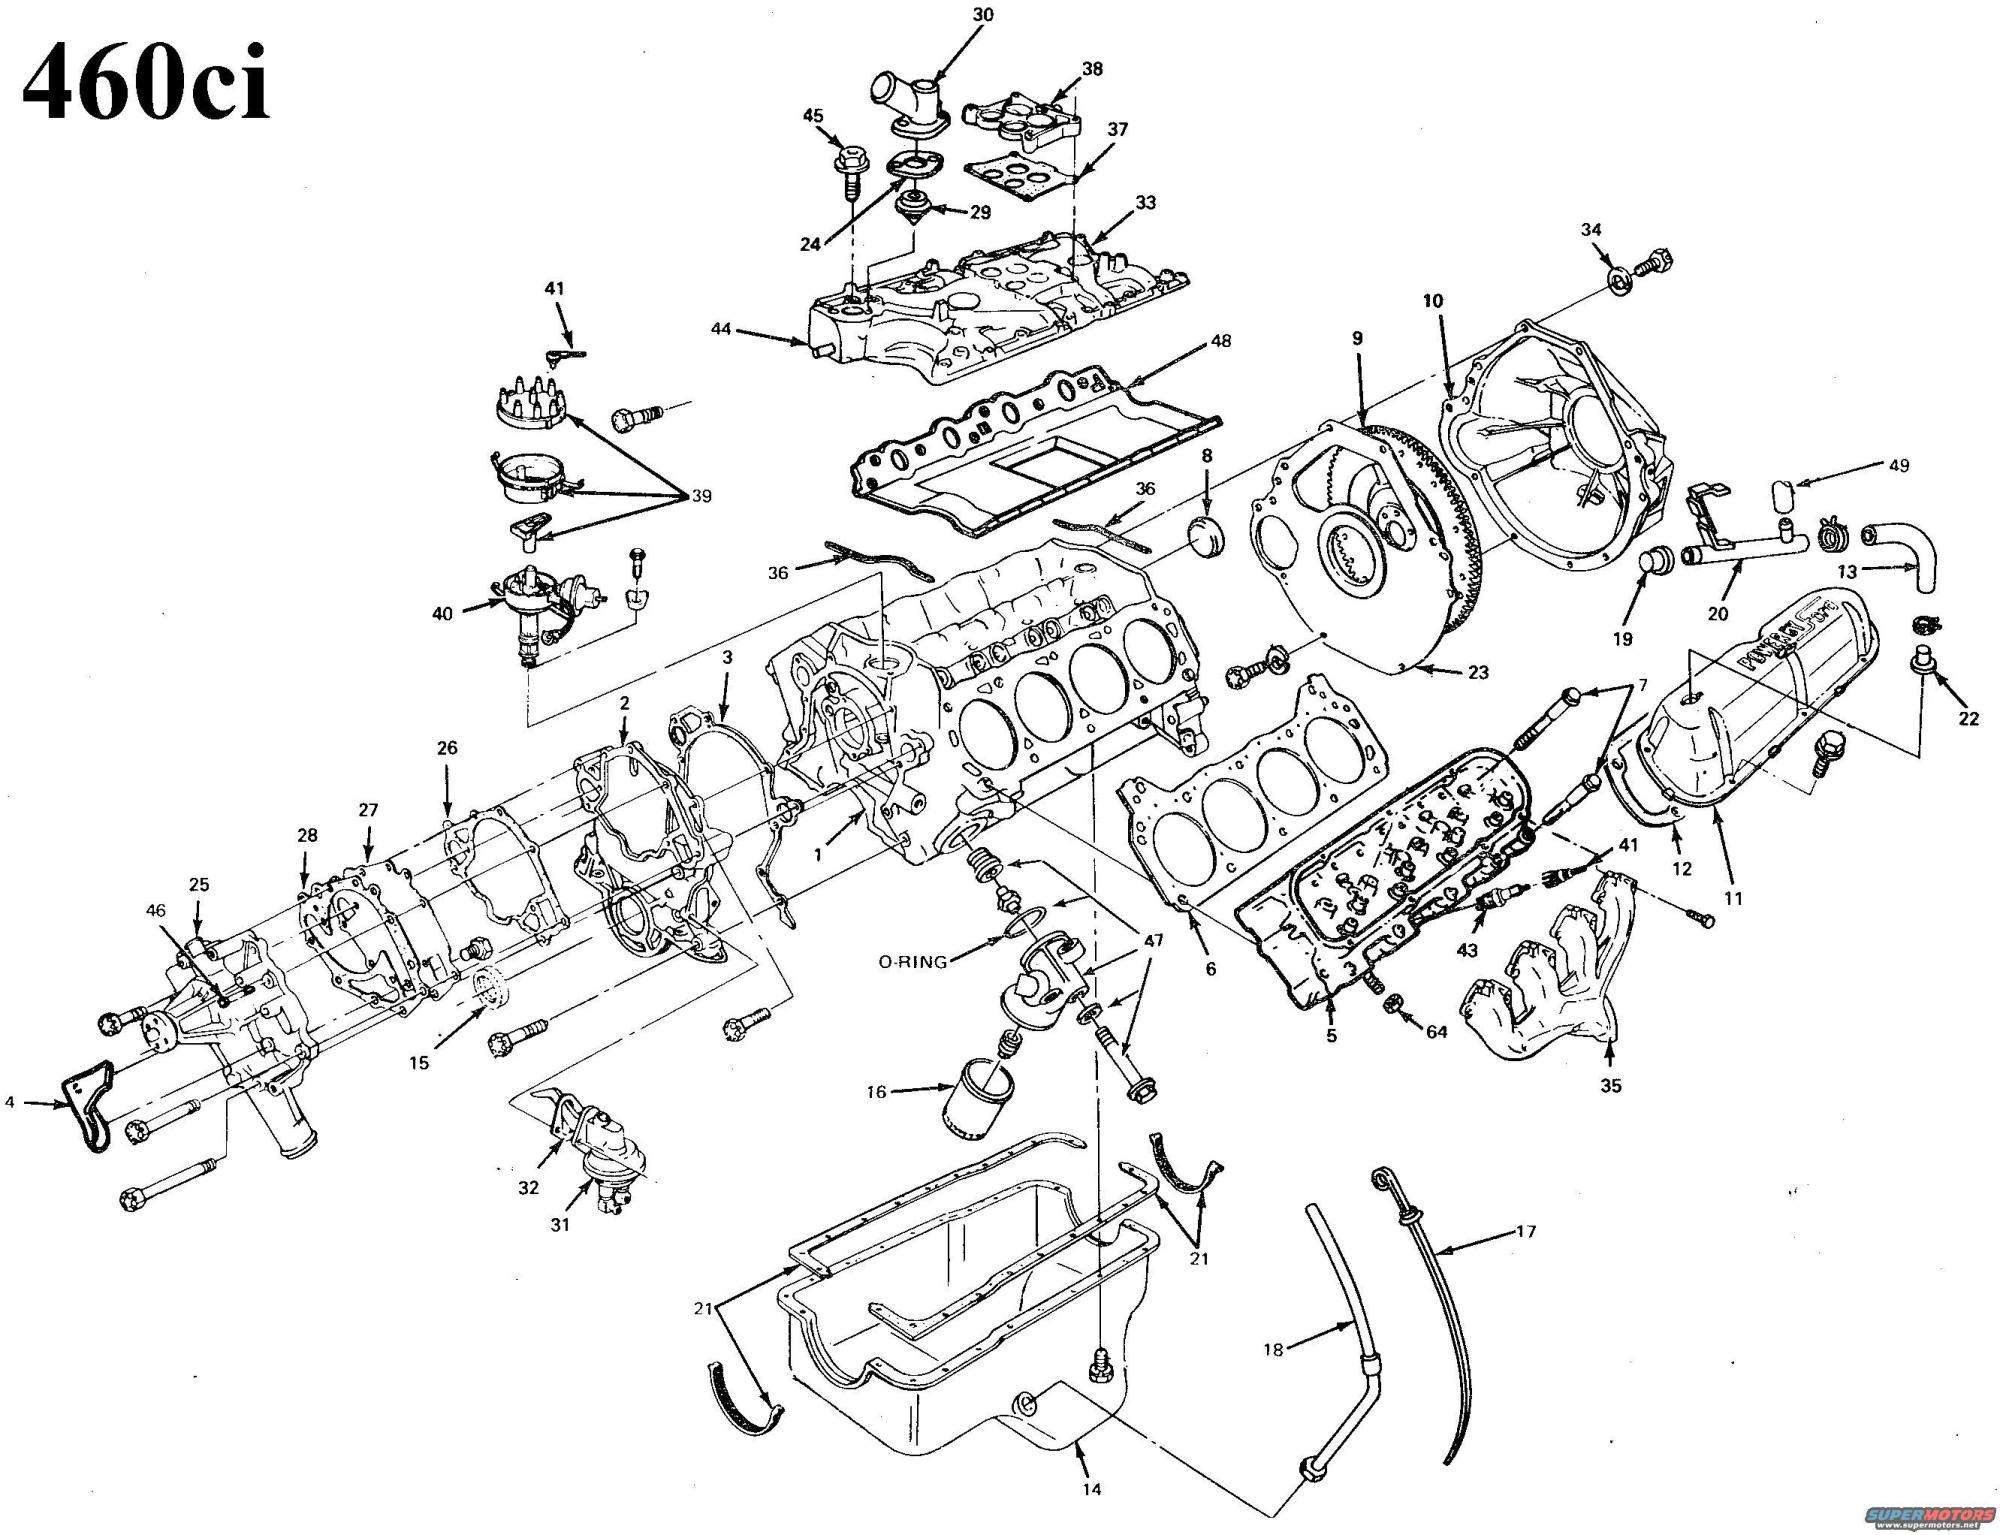 hight resolution of 1983 ford bronco diagrams picture supermotors net 2013 ford focus engine diagram ford 460 engine diagram